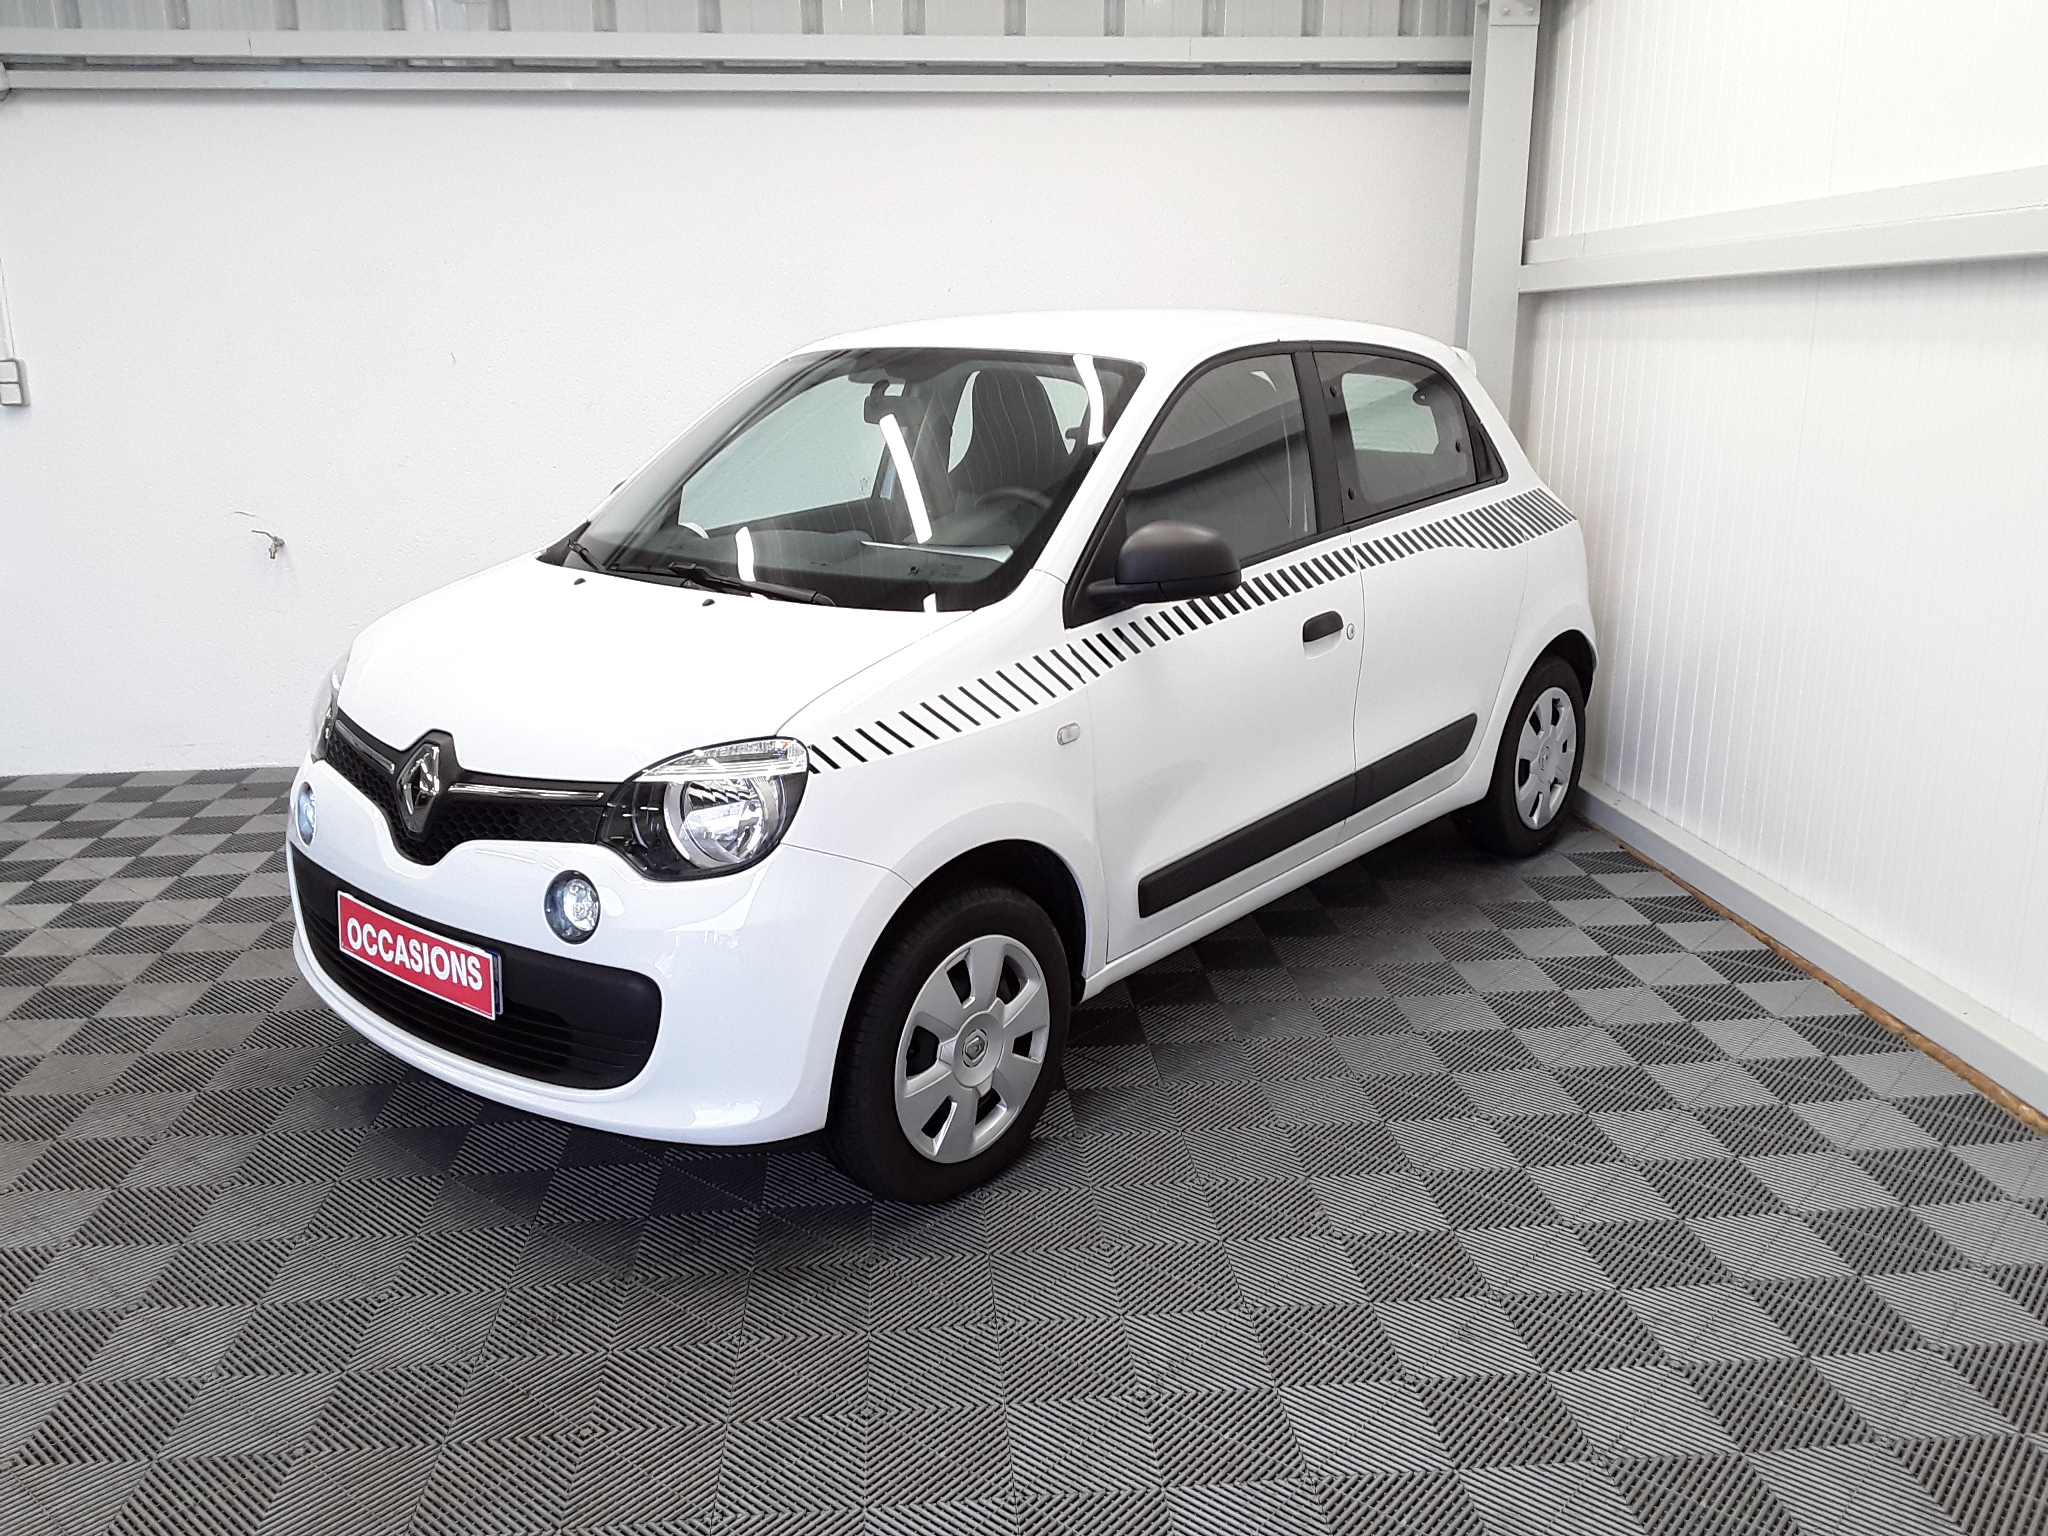 RENAULT TWINGO III 1.0 SCe 70 BC Life d'occasion